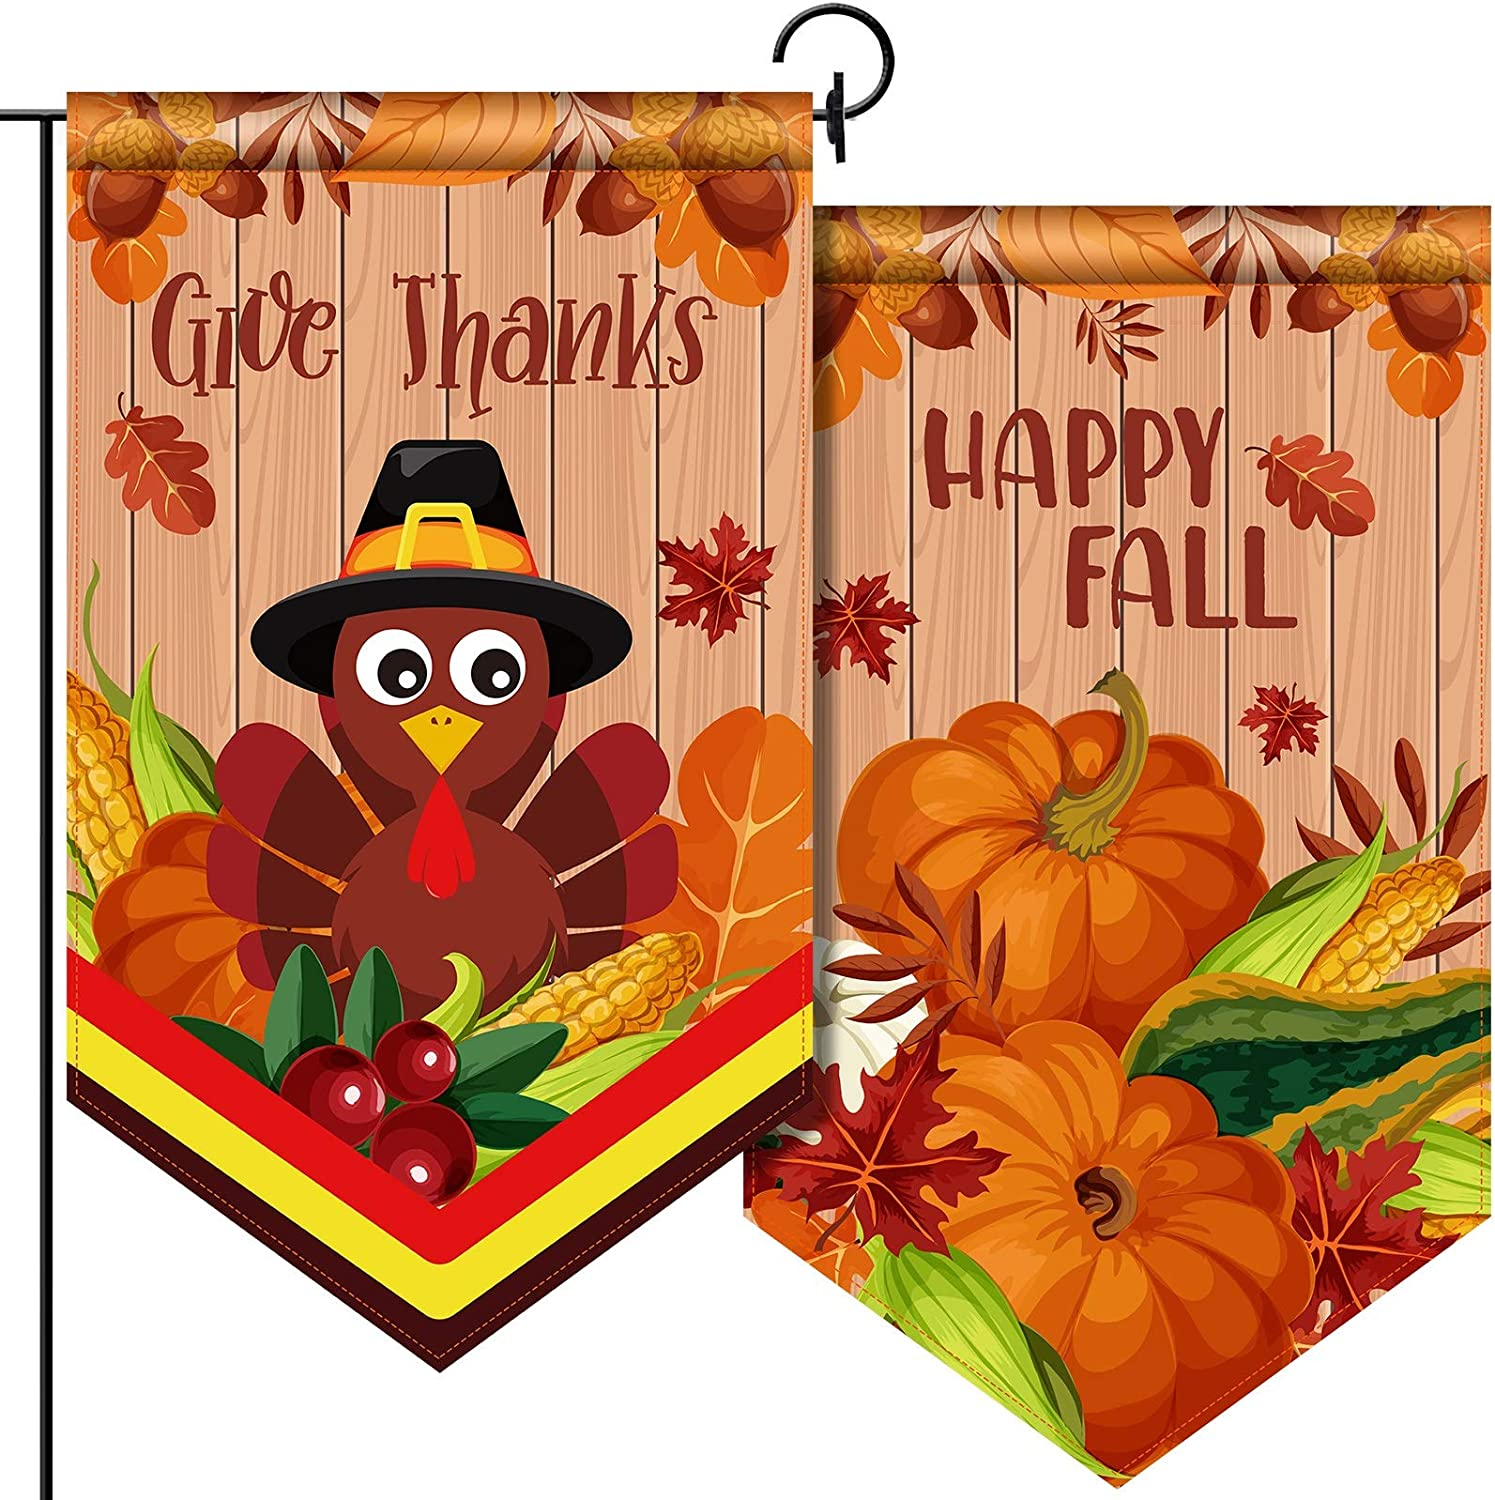 Fall Thanksgiving Garden Flag Double-Sided Decorative Fabric House Flag Happy Fall Welcome Flag Funny Turkey Pumpkin Yard Decorations for Give Thanks Outdoor Decor Party Favors, 12.6 x 21.7 Inch